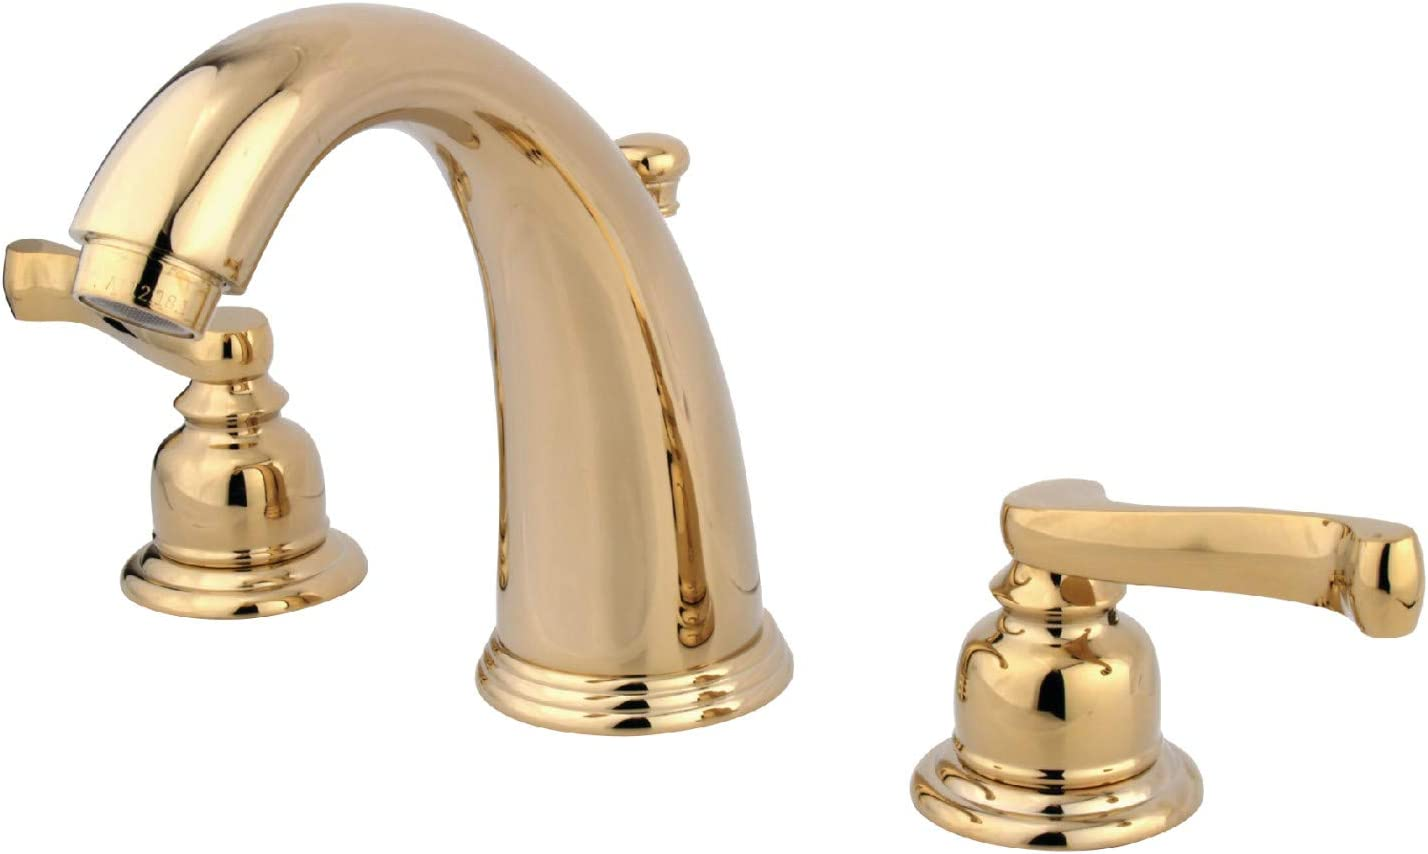 Kingston Brass Kb982fl Royale Widespread Lavatory Faucet With Brass Pop Up Polished Brass 8 Inch Adjustable Center Touch On Bathroom Sink Faucets